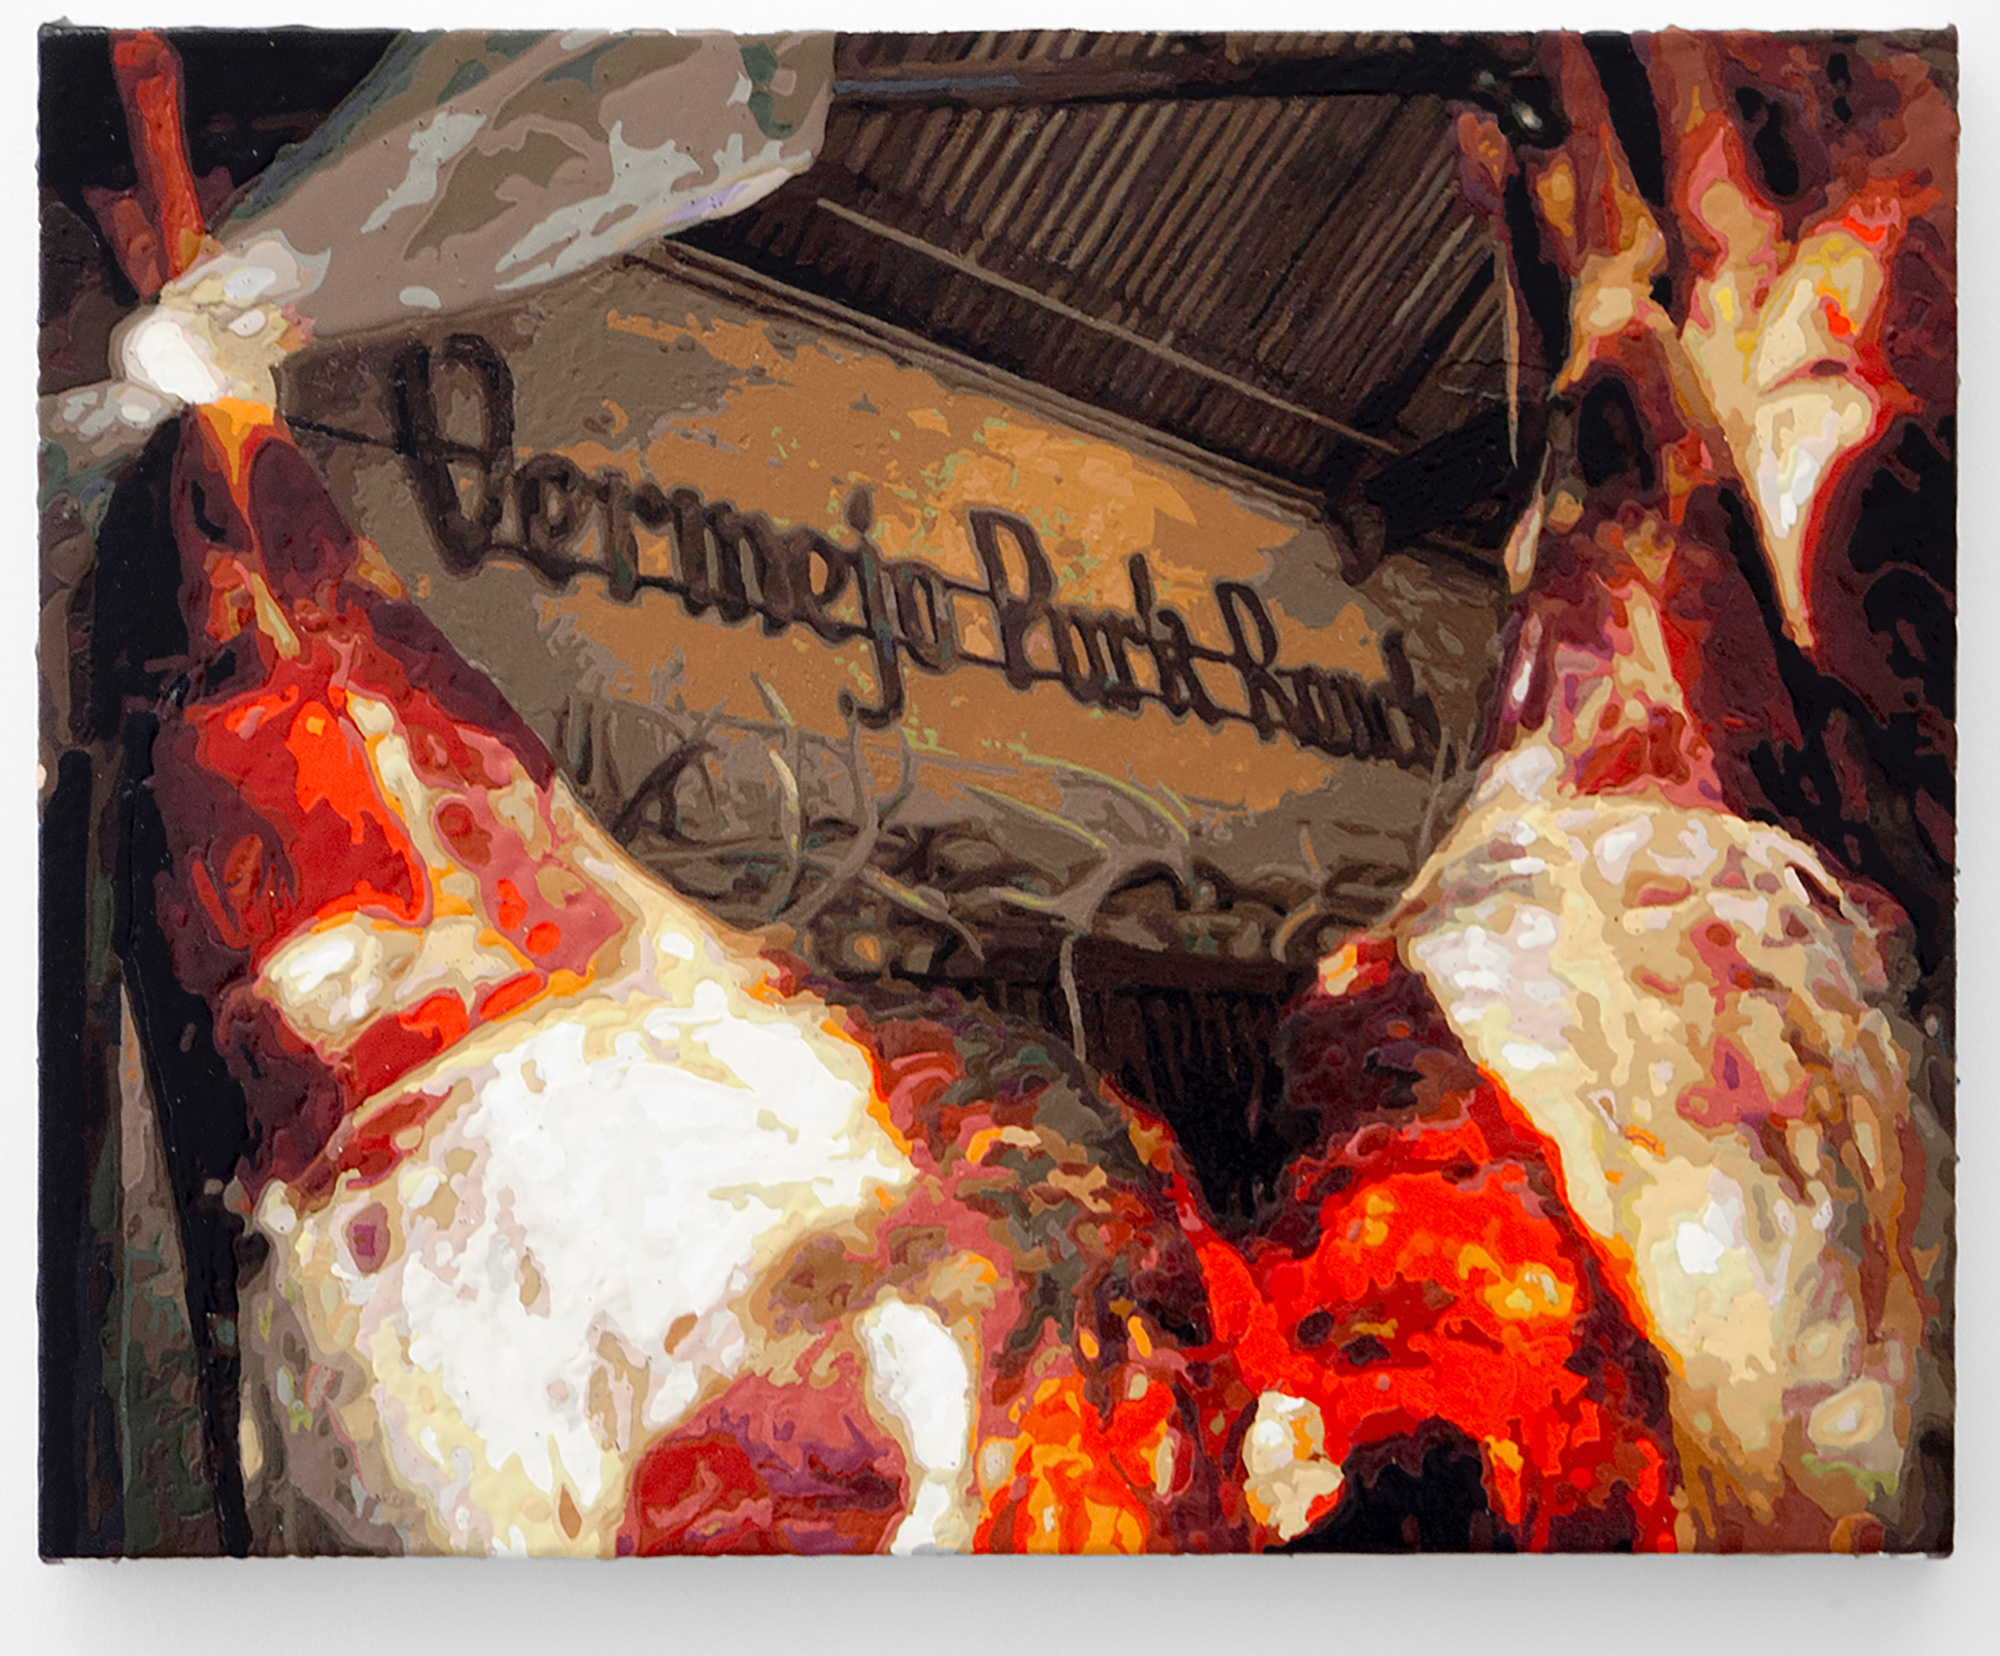 Dorian FitzGerald,  Vermejo Park Ranch  , 2016 acrylic on canvas mounted to board, 36 x 48 inches